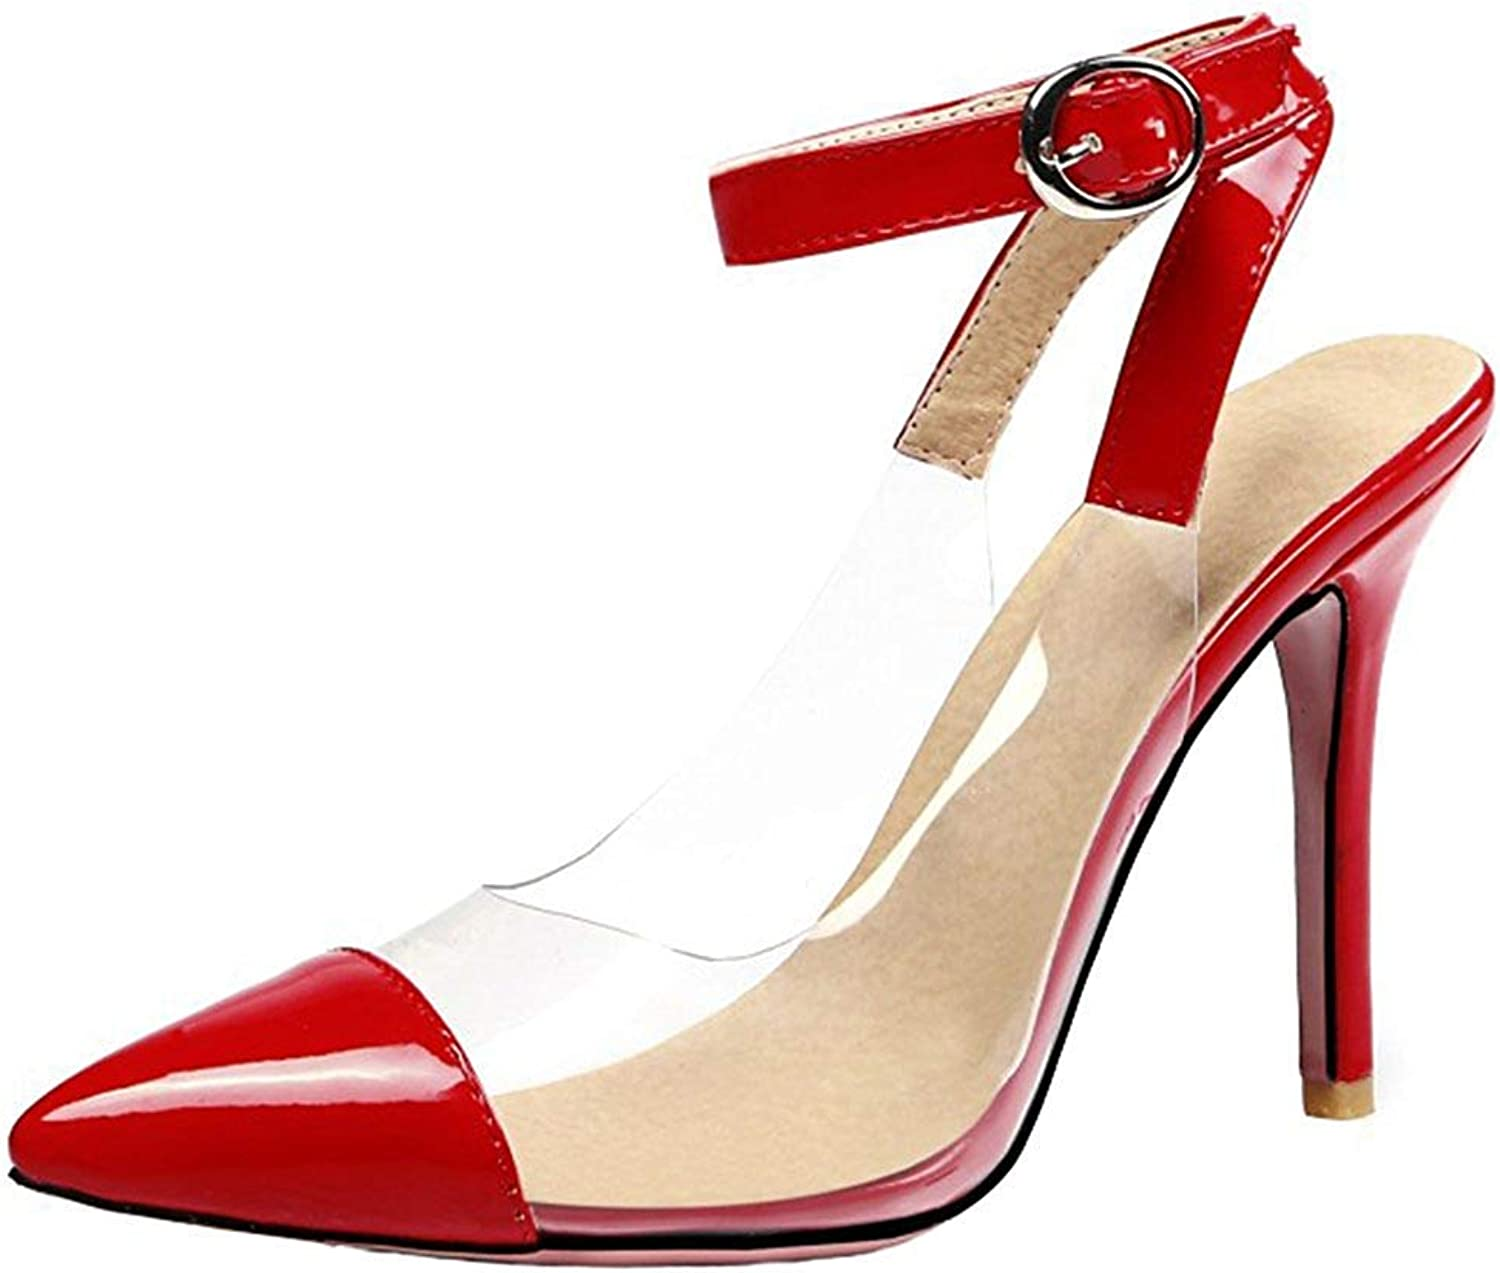 Ghssheh Women's Sexy Splicing Pointed Toe Buckle Ankle Straps Stiletto High Heels Sandals Red 4 M US